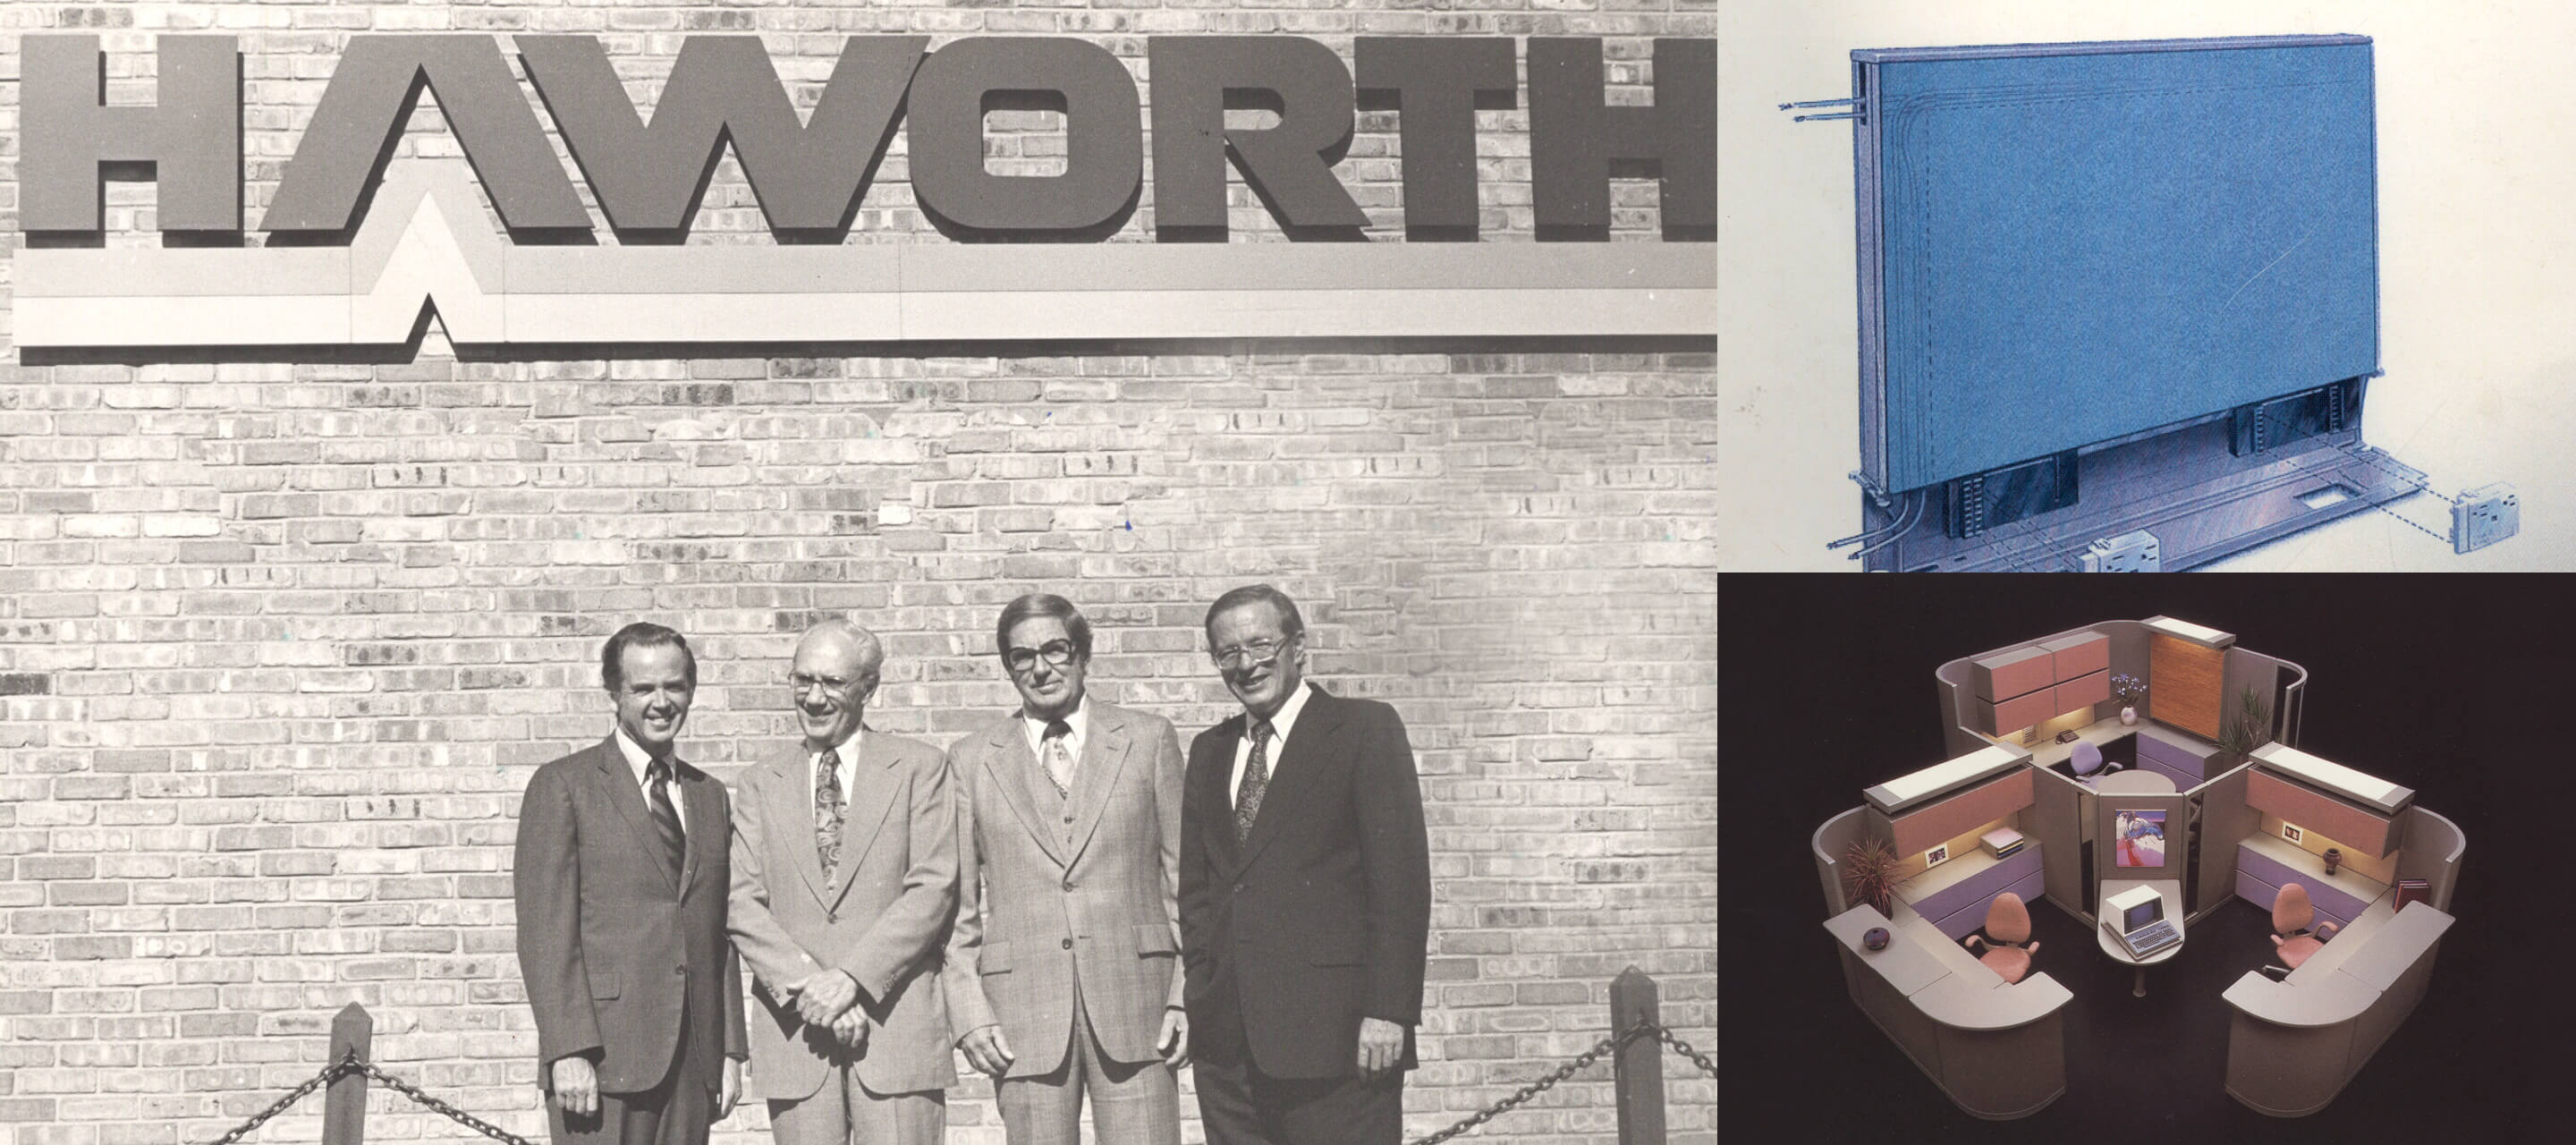 1970s​—In 1976, Modern Partitions changes its name to Haworth, Inc. That same year, Dick Haworth helps devise a way to prewire panels, and patents the most innovative workplace product since open-plan office systems.​ Haworth International, Inc., is formed to set up foreign licenses for the manufacture and marketing of office interior systems.